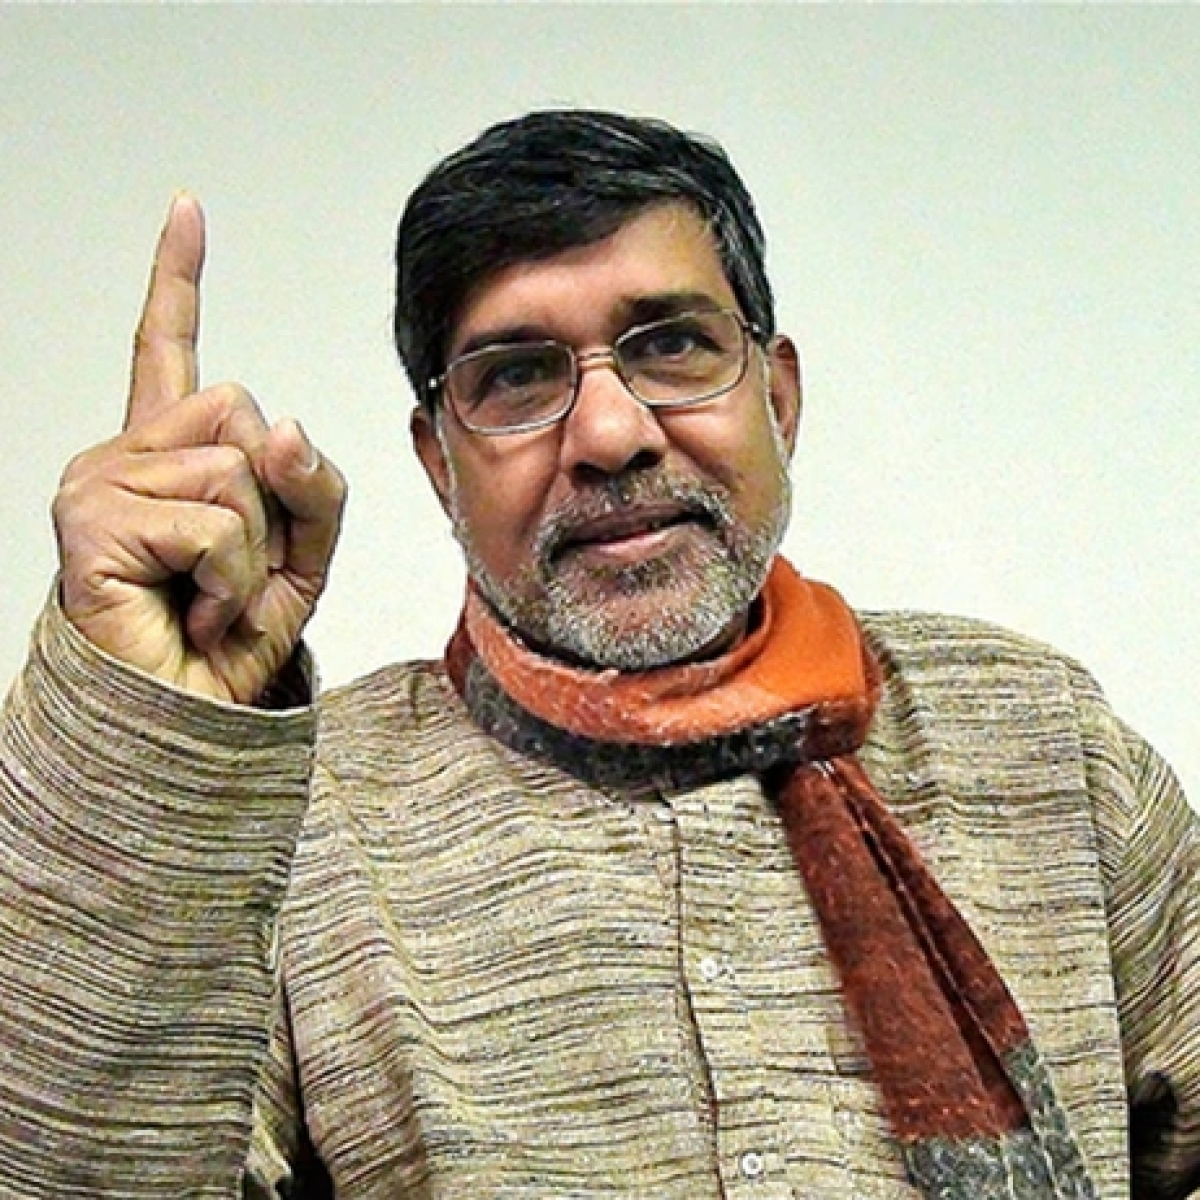 'Our daughters need you': Nobel laureate Kailash Satyarthi urges PM Modi to end 'crisis of justice' for women, children